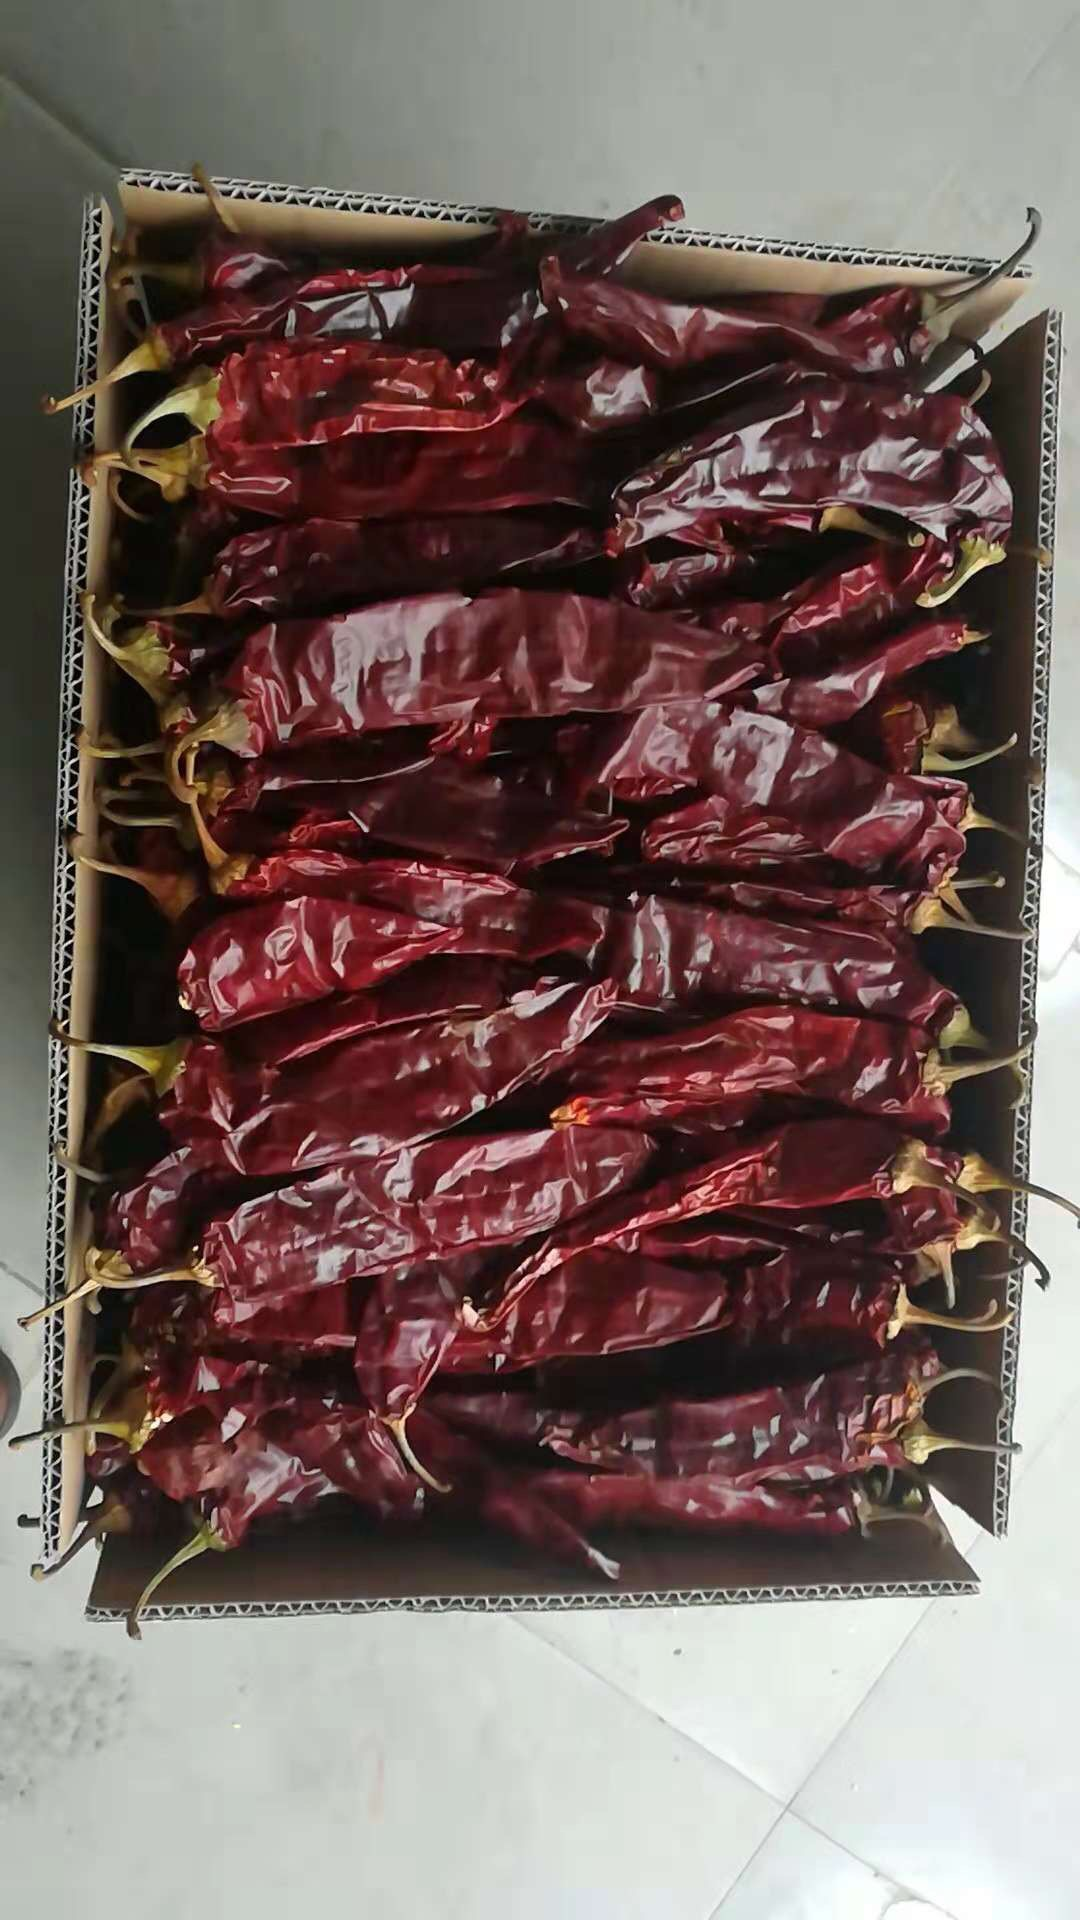 Bulk Whole Dried Paprika Pods with Stem for Food Industry